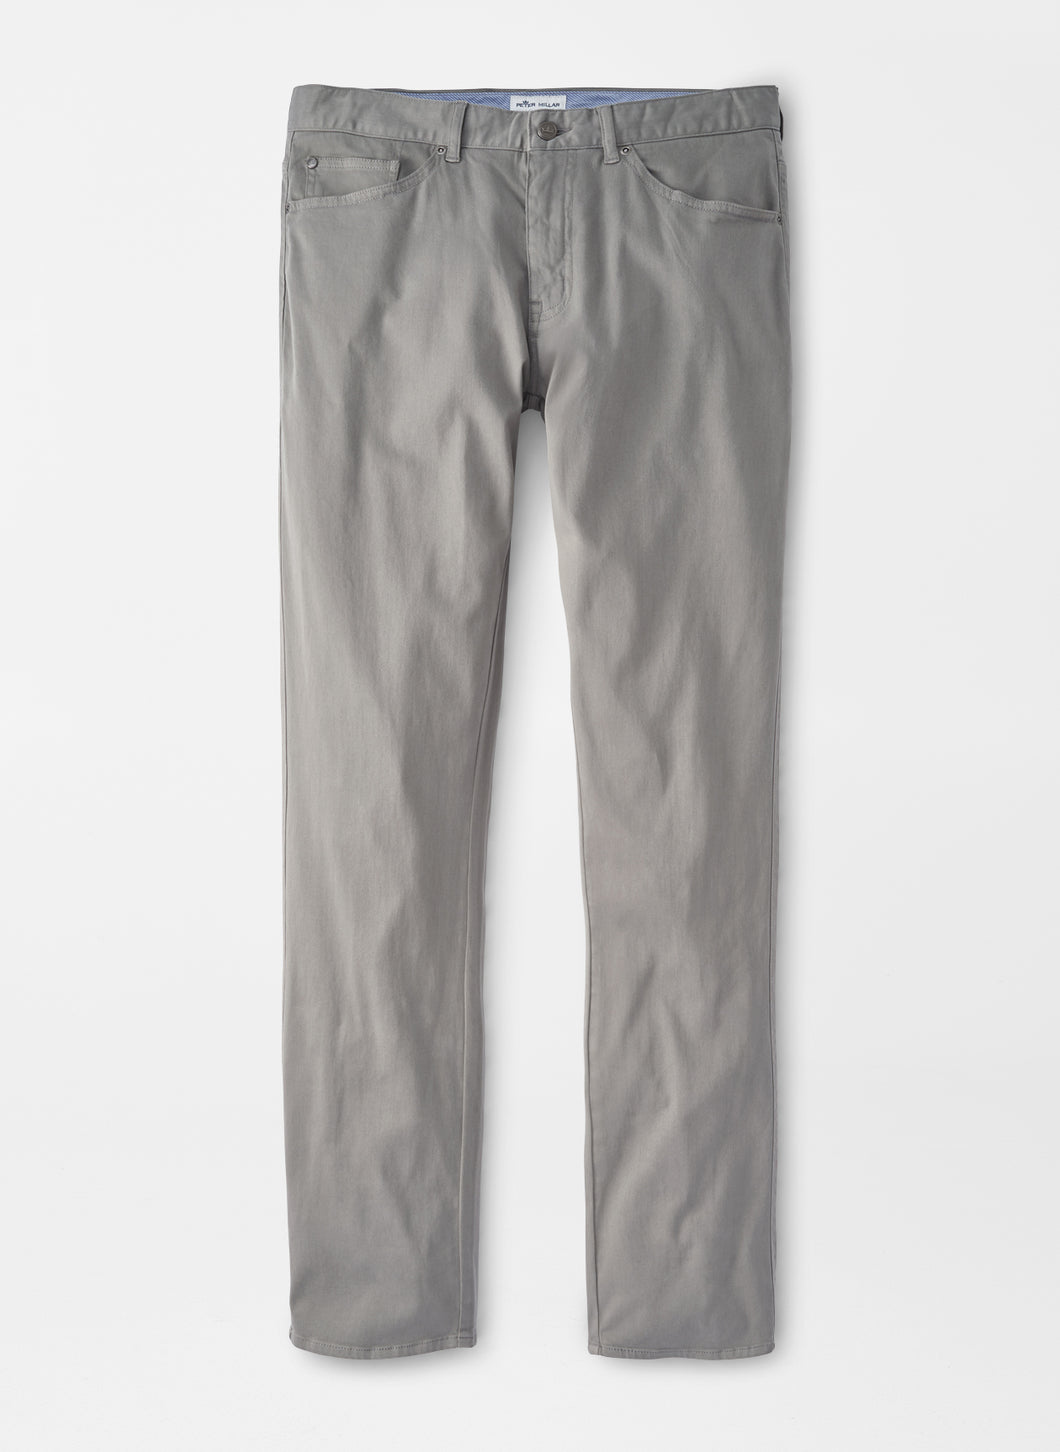 Peter Millar Ultimate Sateen Five-Pocket Pant in Gale Grey